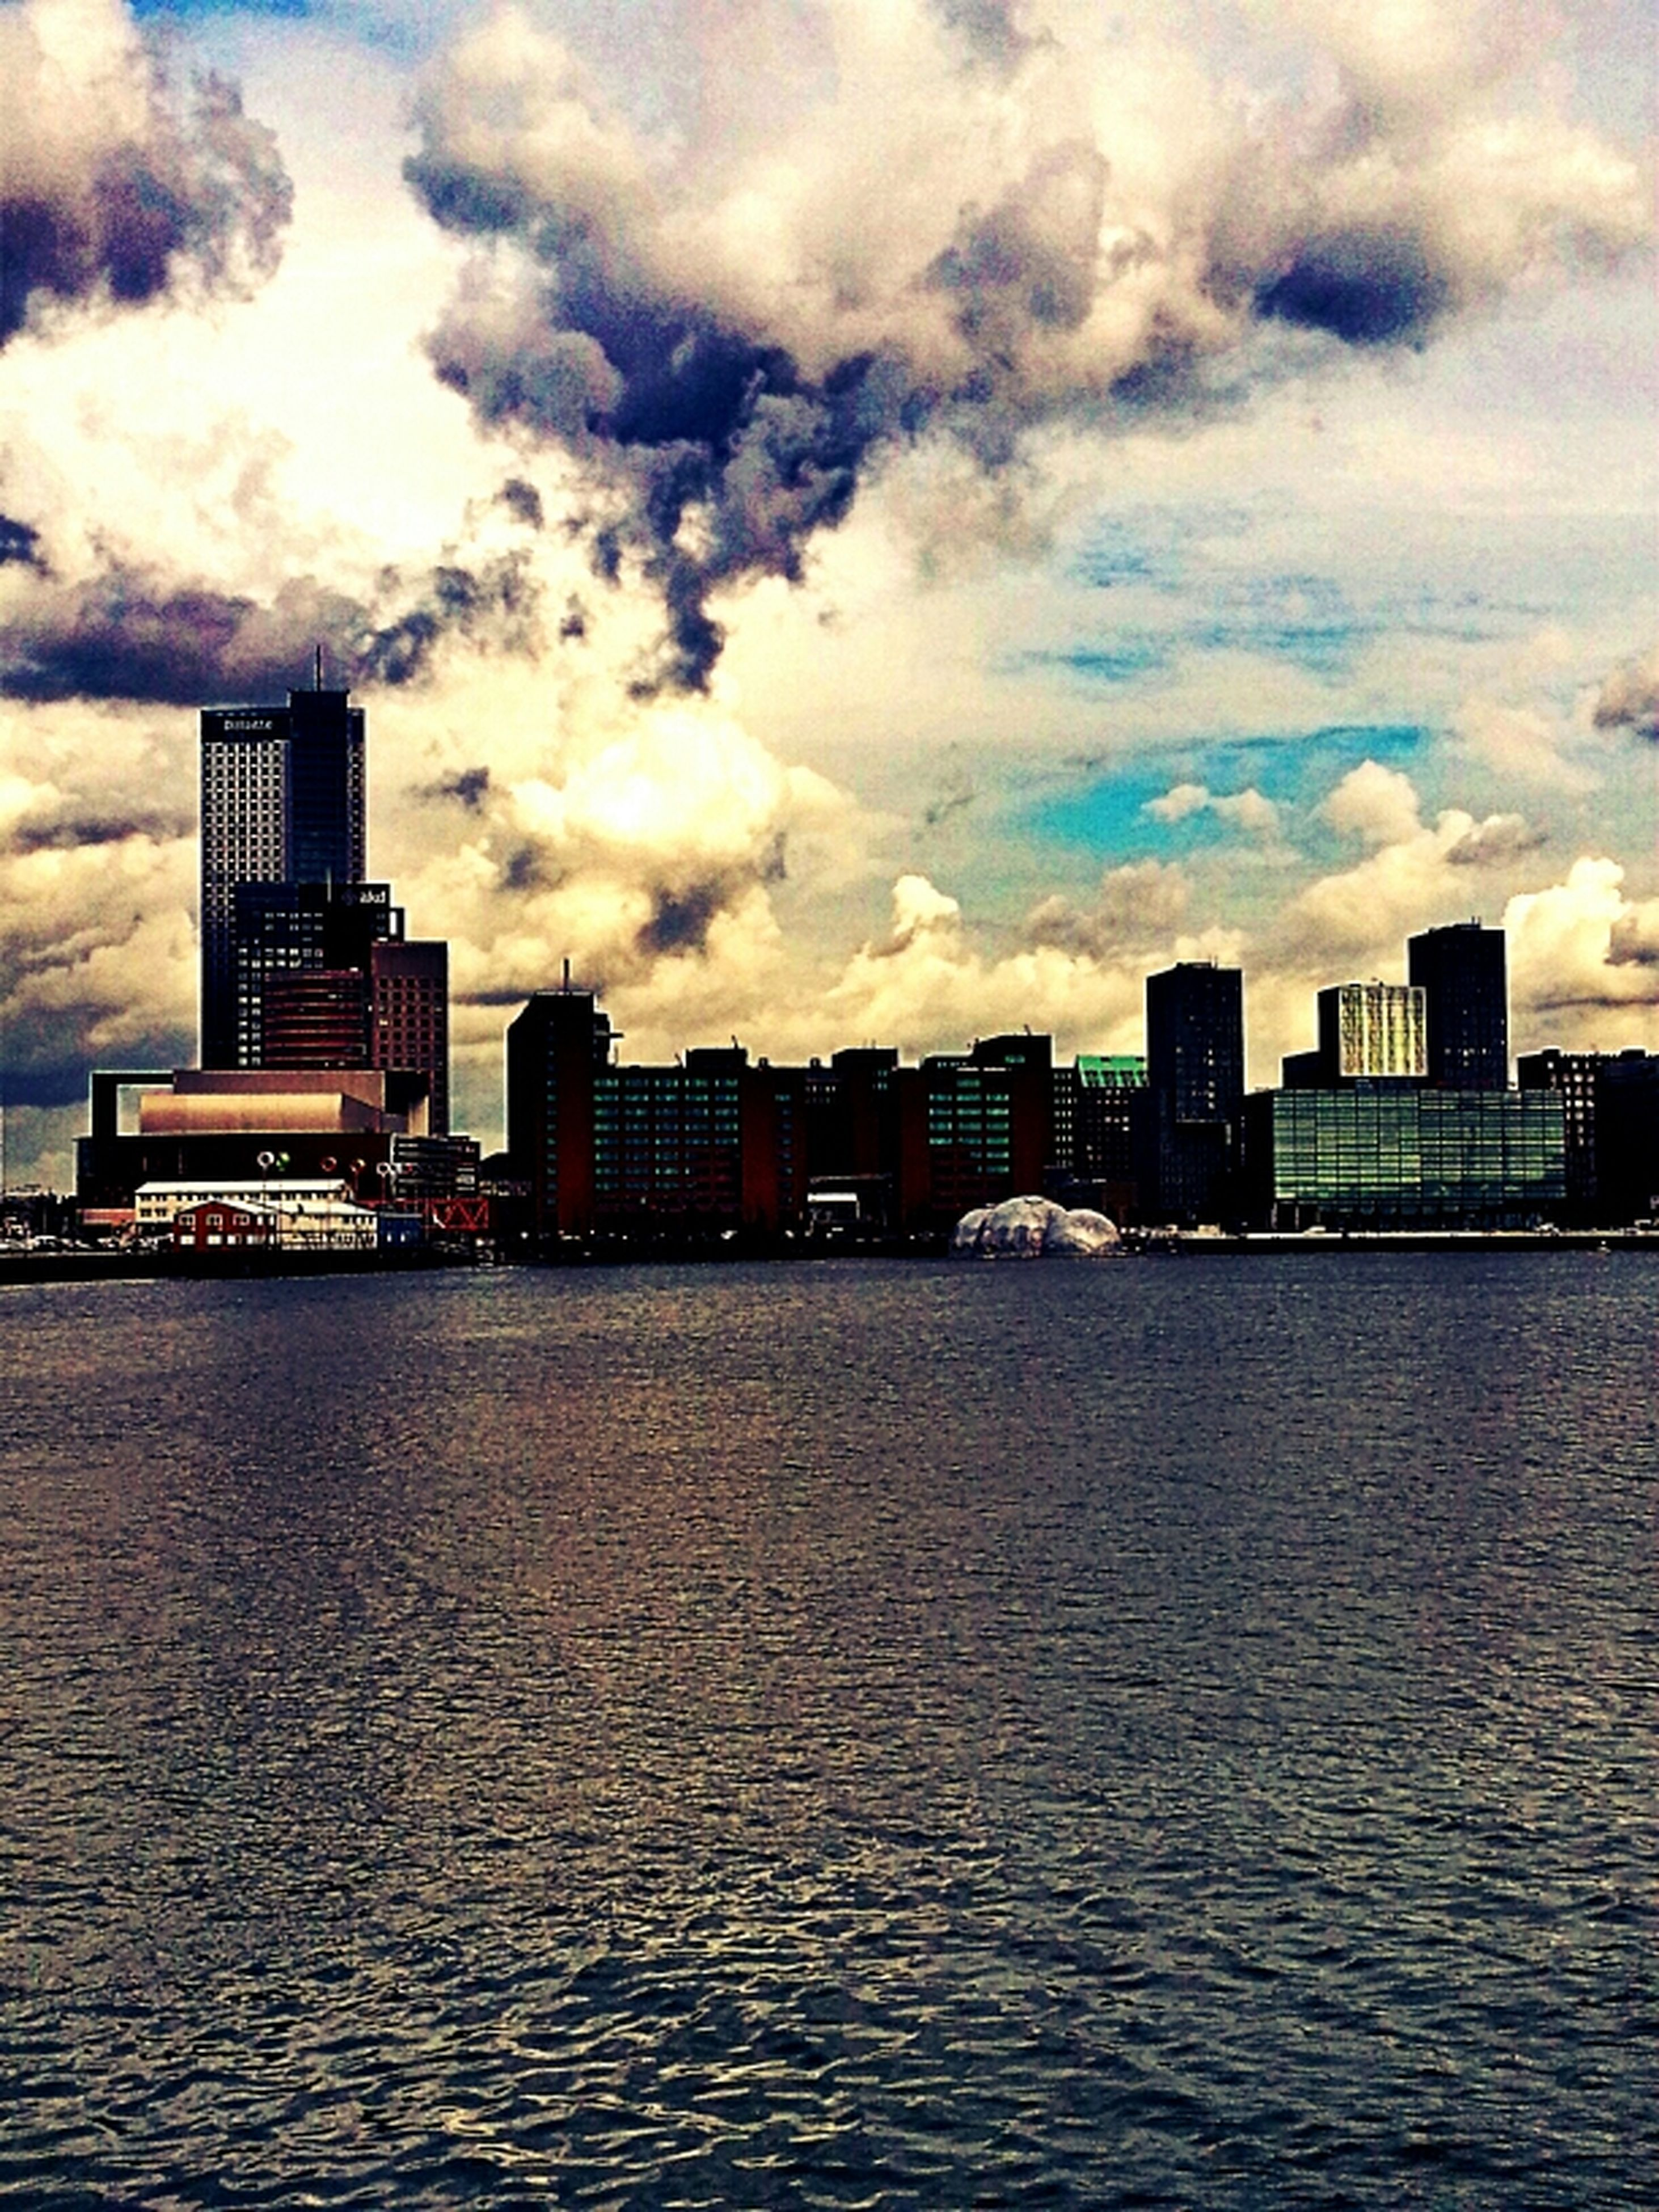 building exterior, architecture, built structure, sky, waterfront, cloud - sky, cloudy, water, city, cloud, sunset, rippled, building, weather, overcast, river, residential building, sea, dusk, residential structure